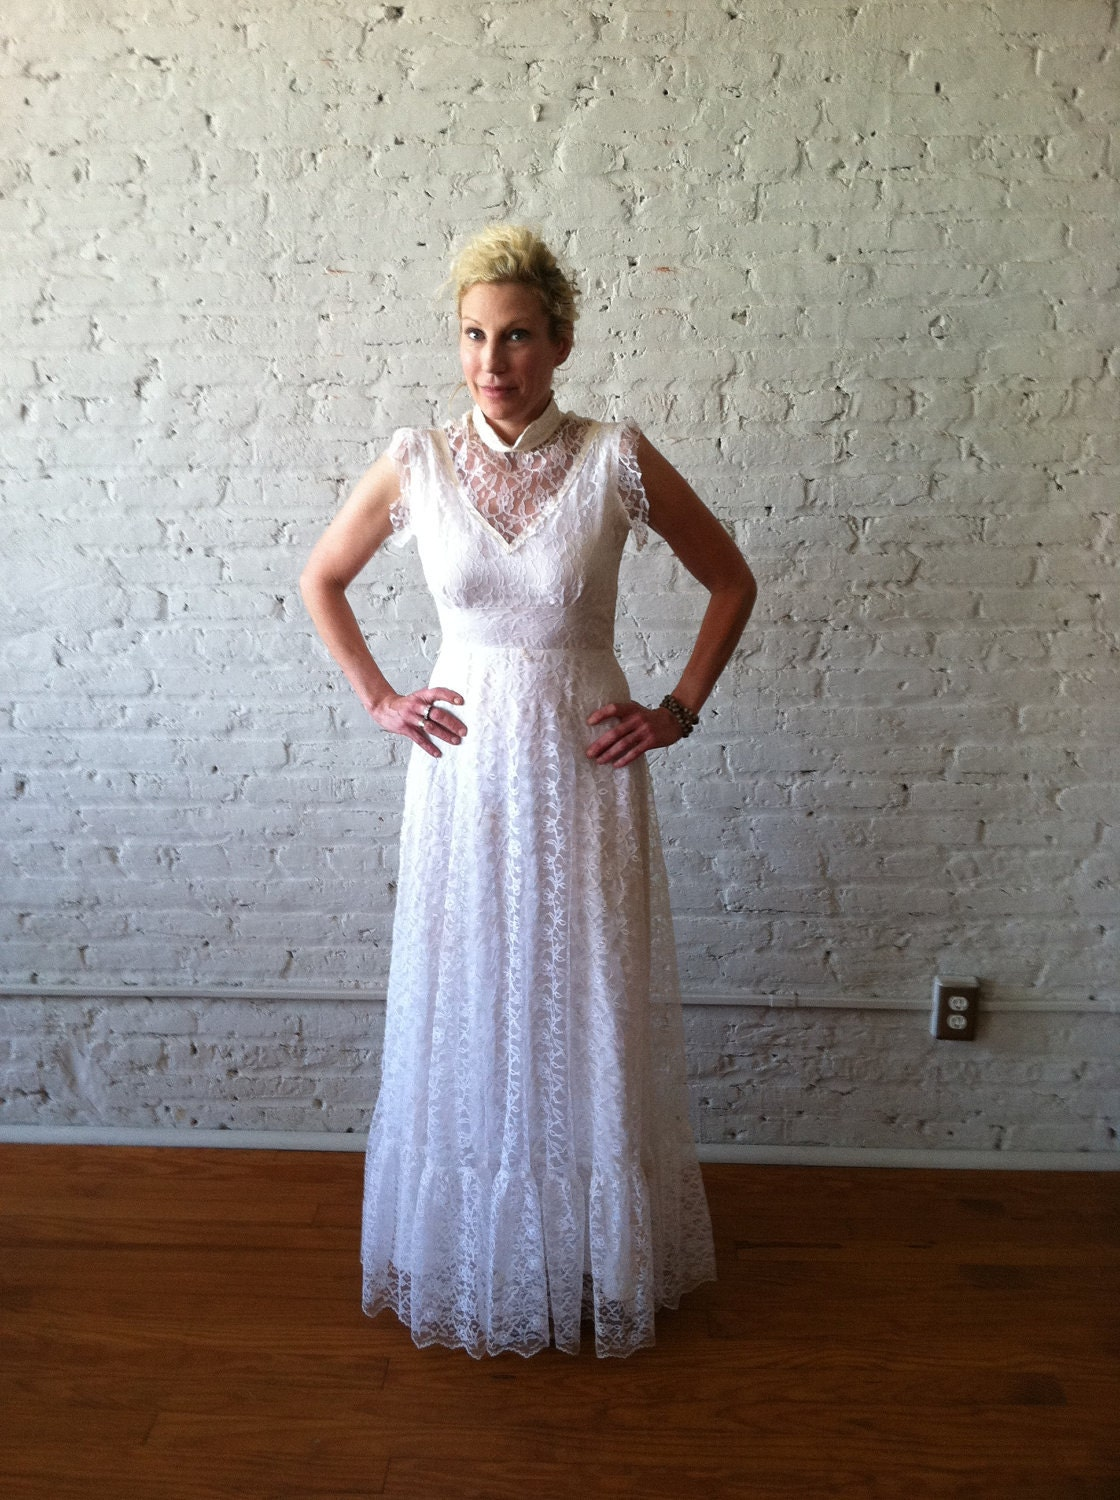 Wedding Dress Lace Italian : Vintage s wedding gown italian lace by avavintage on etsy